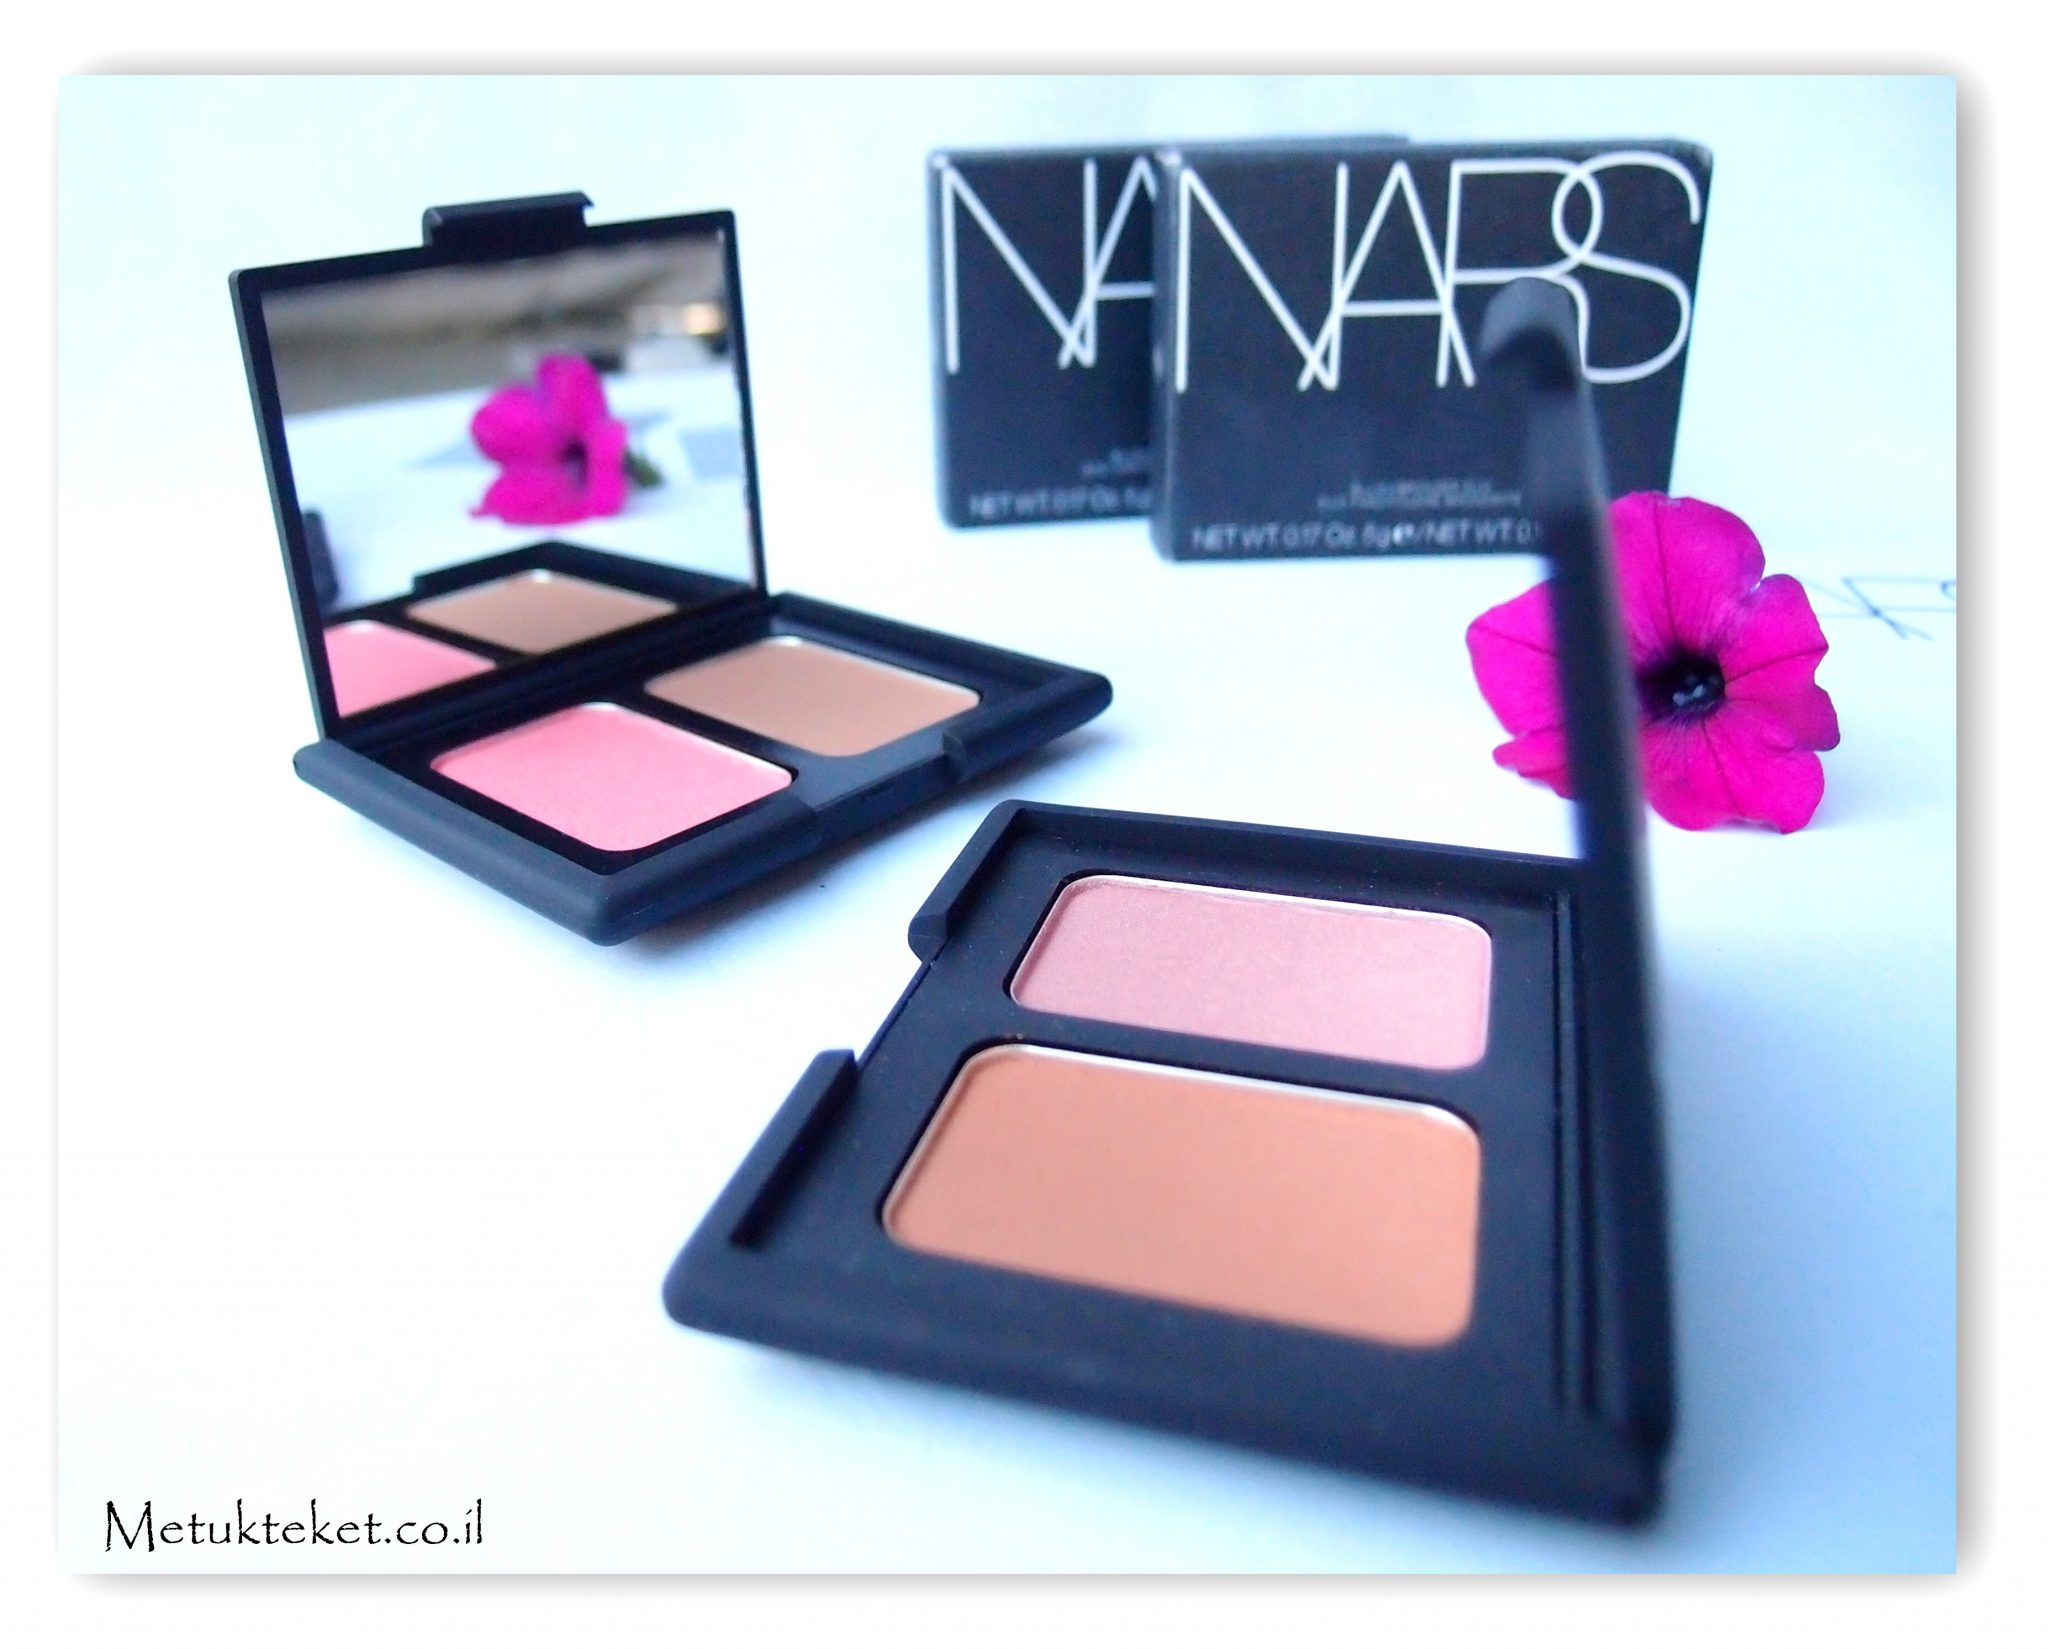 Nars - Blush/Bronzer Duo נארס - צמד ברונזר/סומק